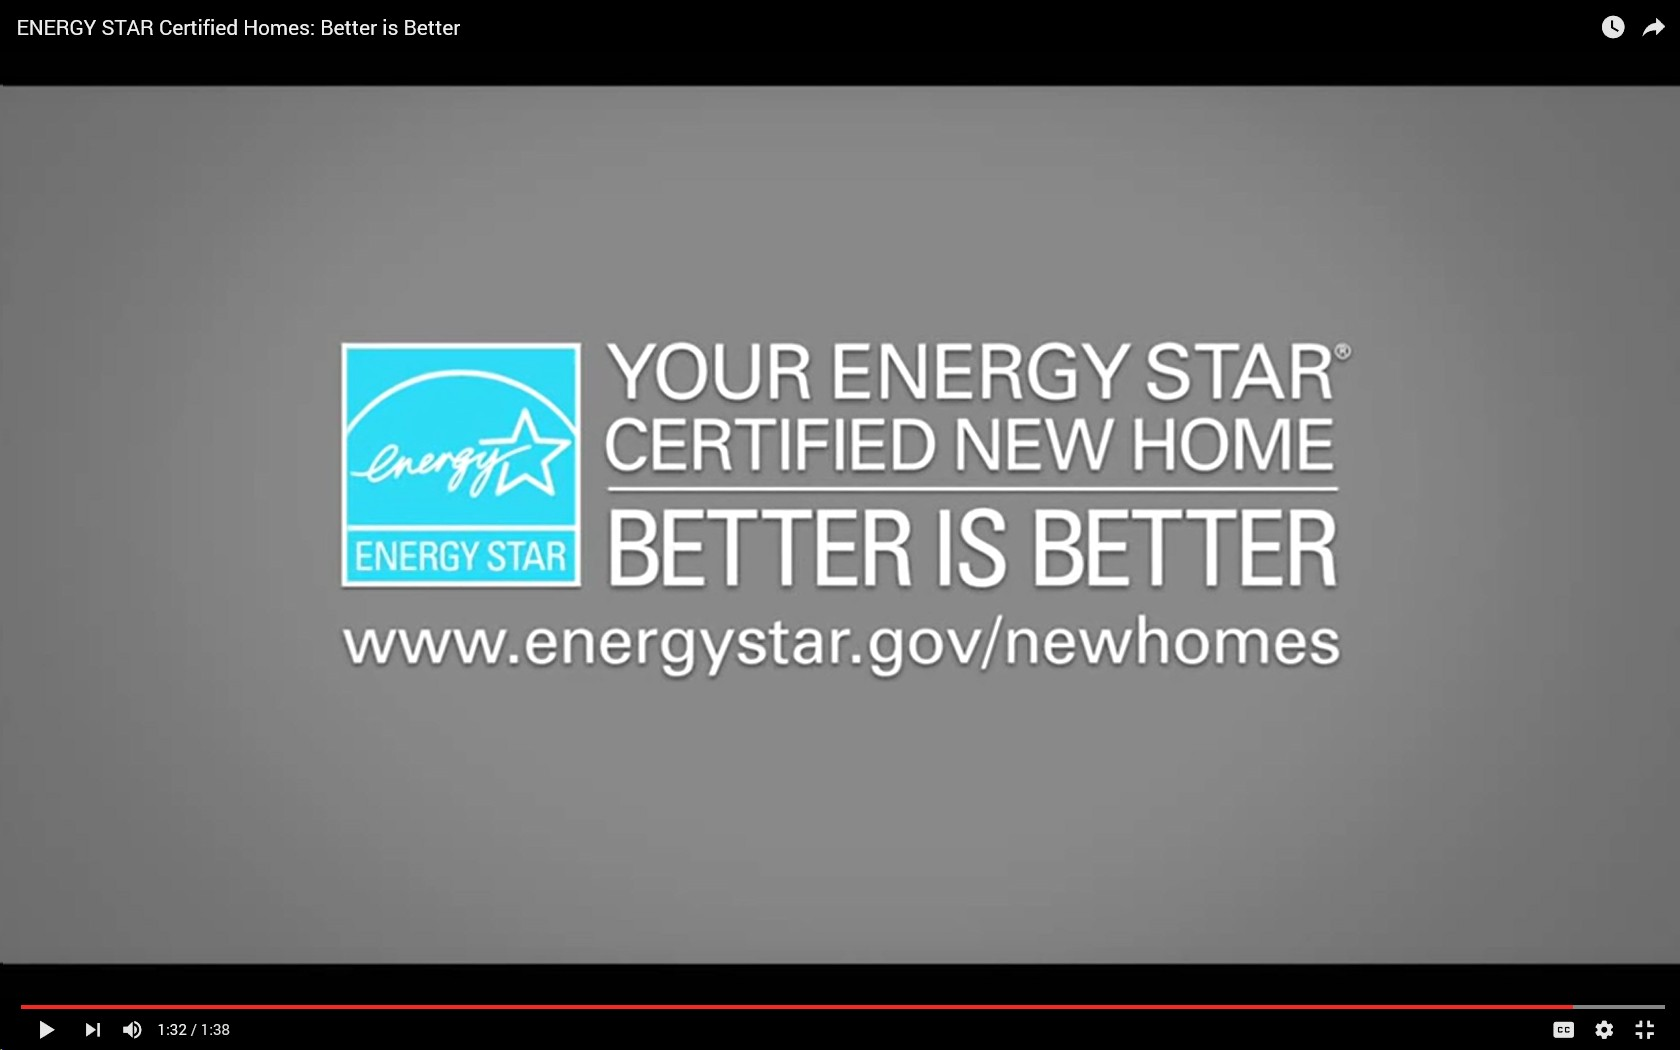 ENERGY STAR Certified Homes Video - Better is Better (short version)